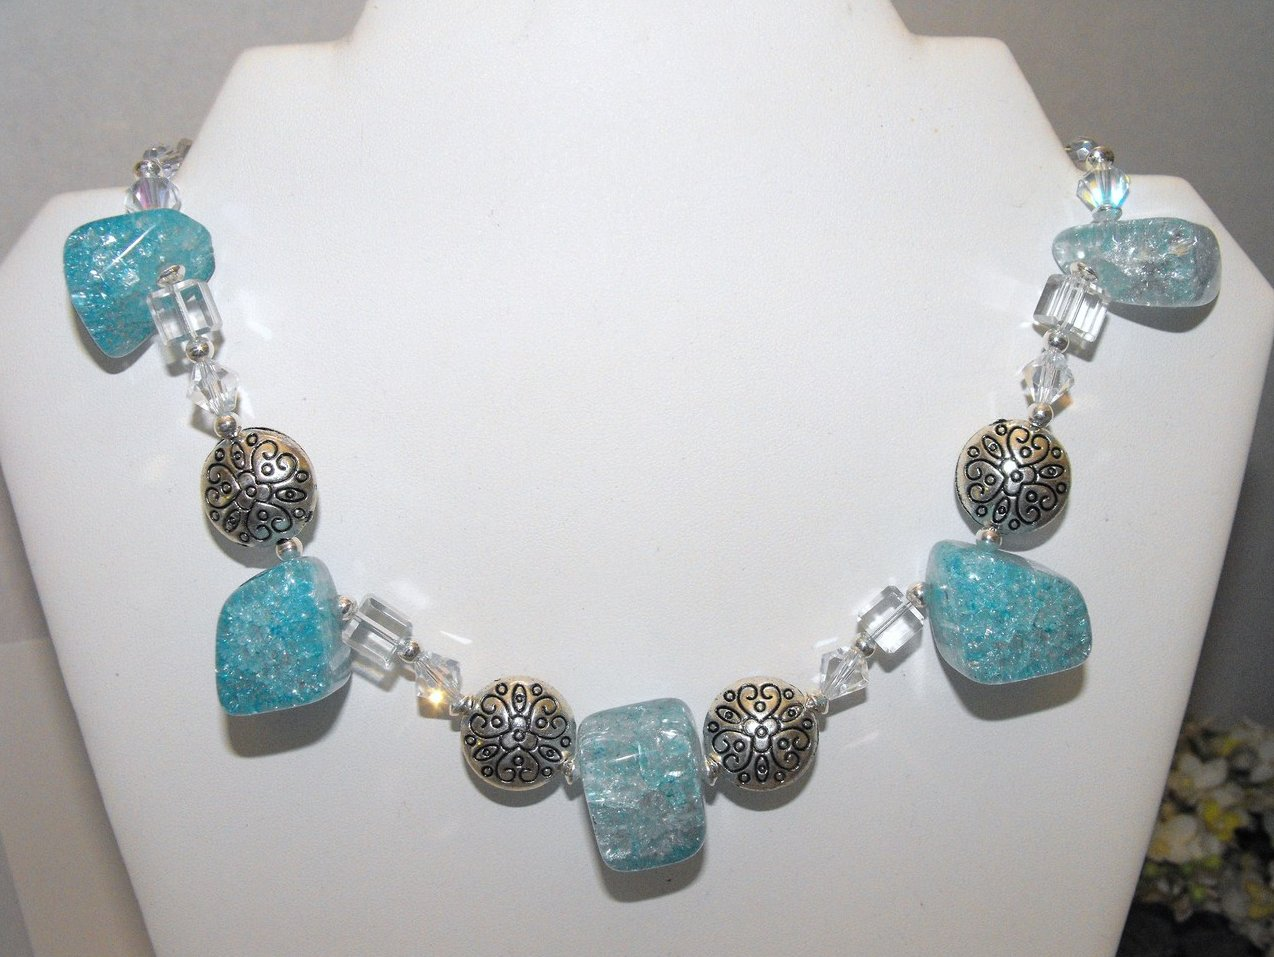 Image 0 of Chunky Necklace Choker Aqua Crackle Quartz Crystal Pewter Beads Silver Plated